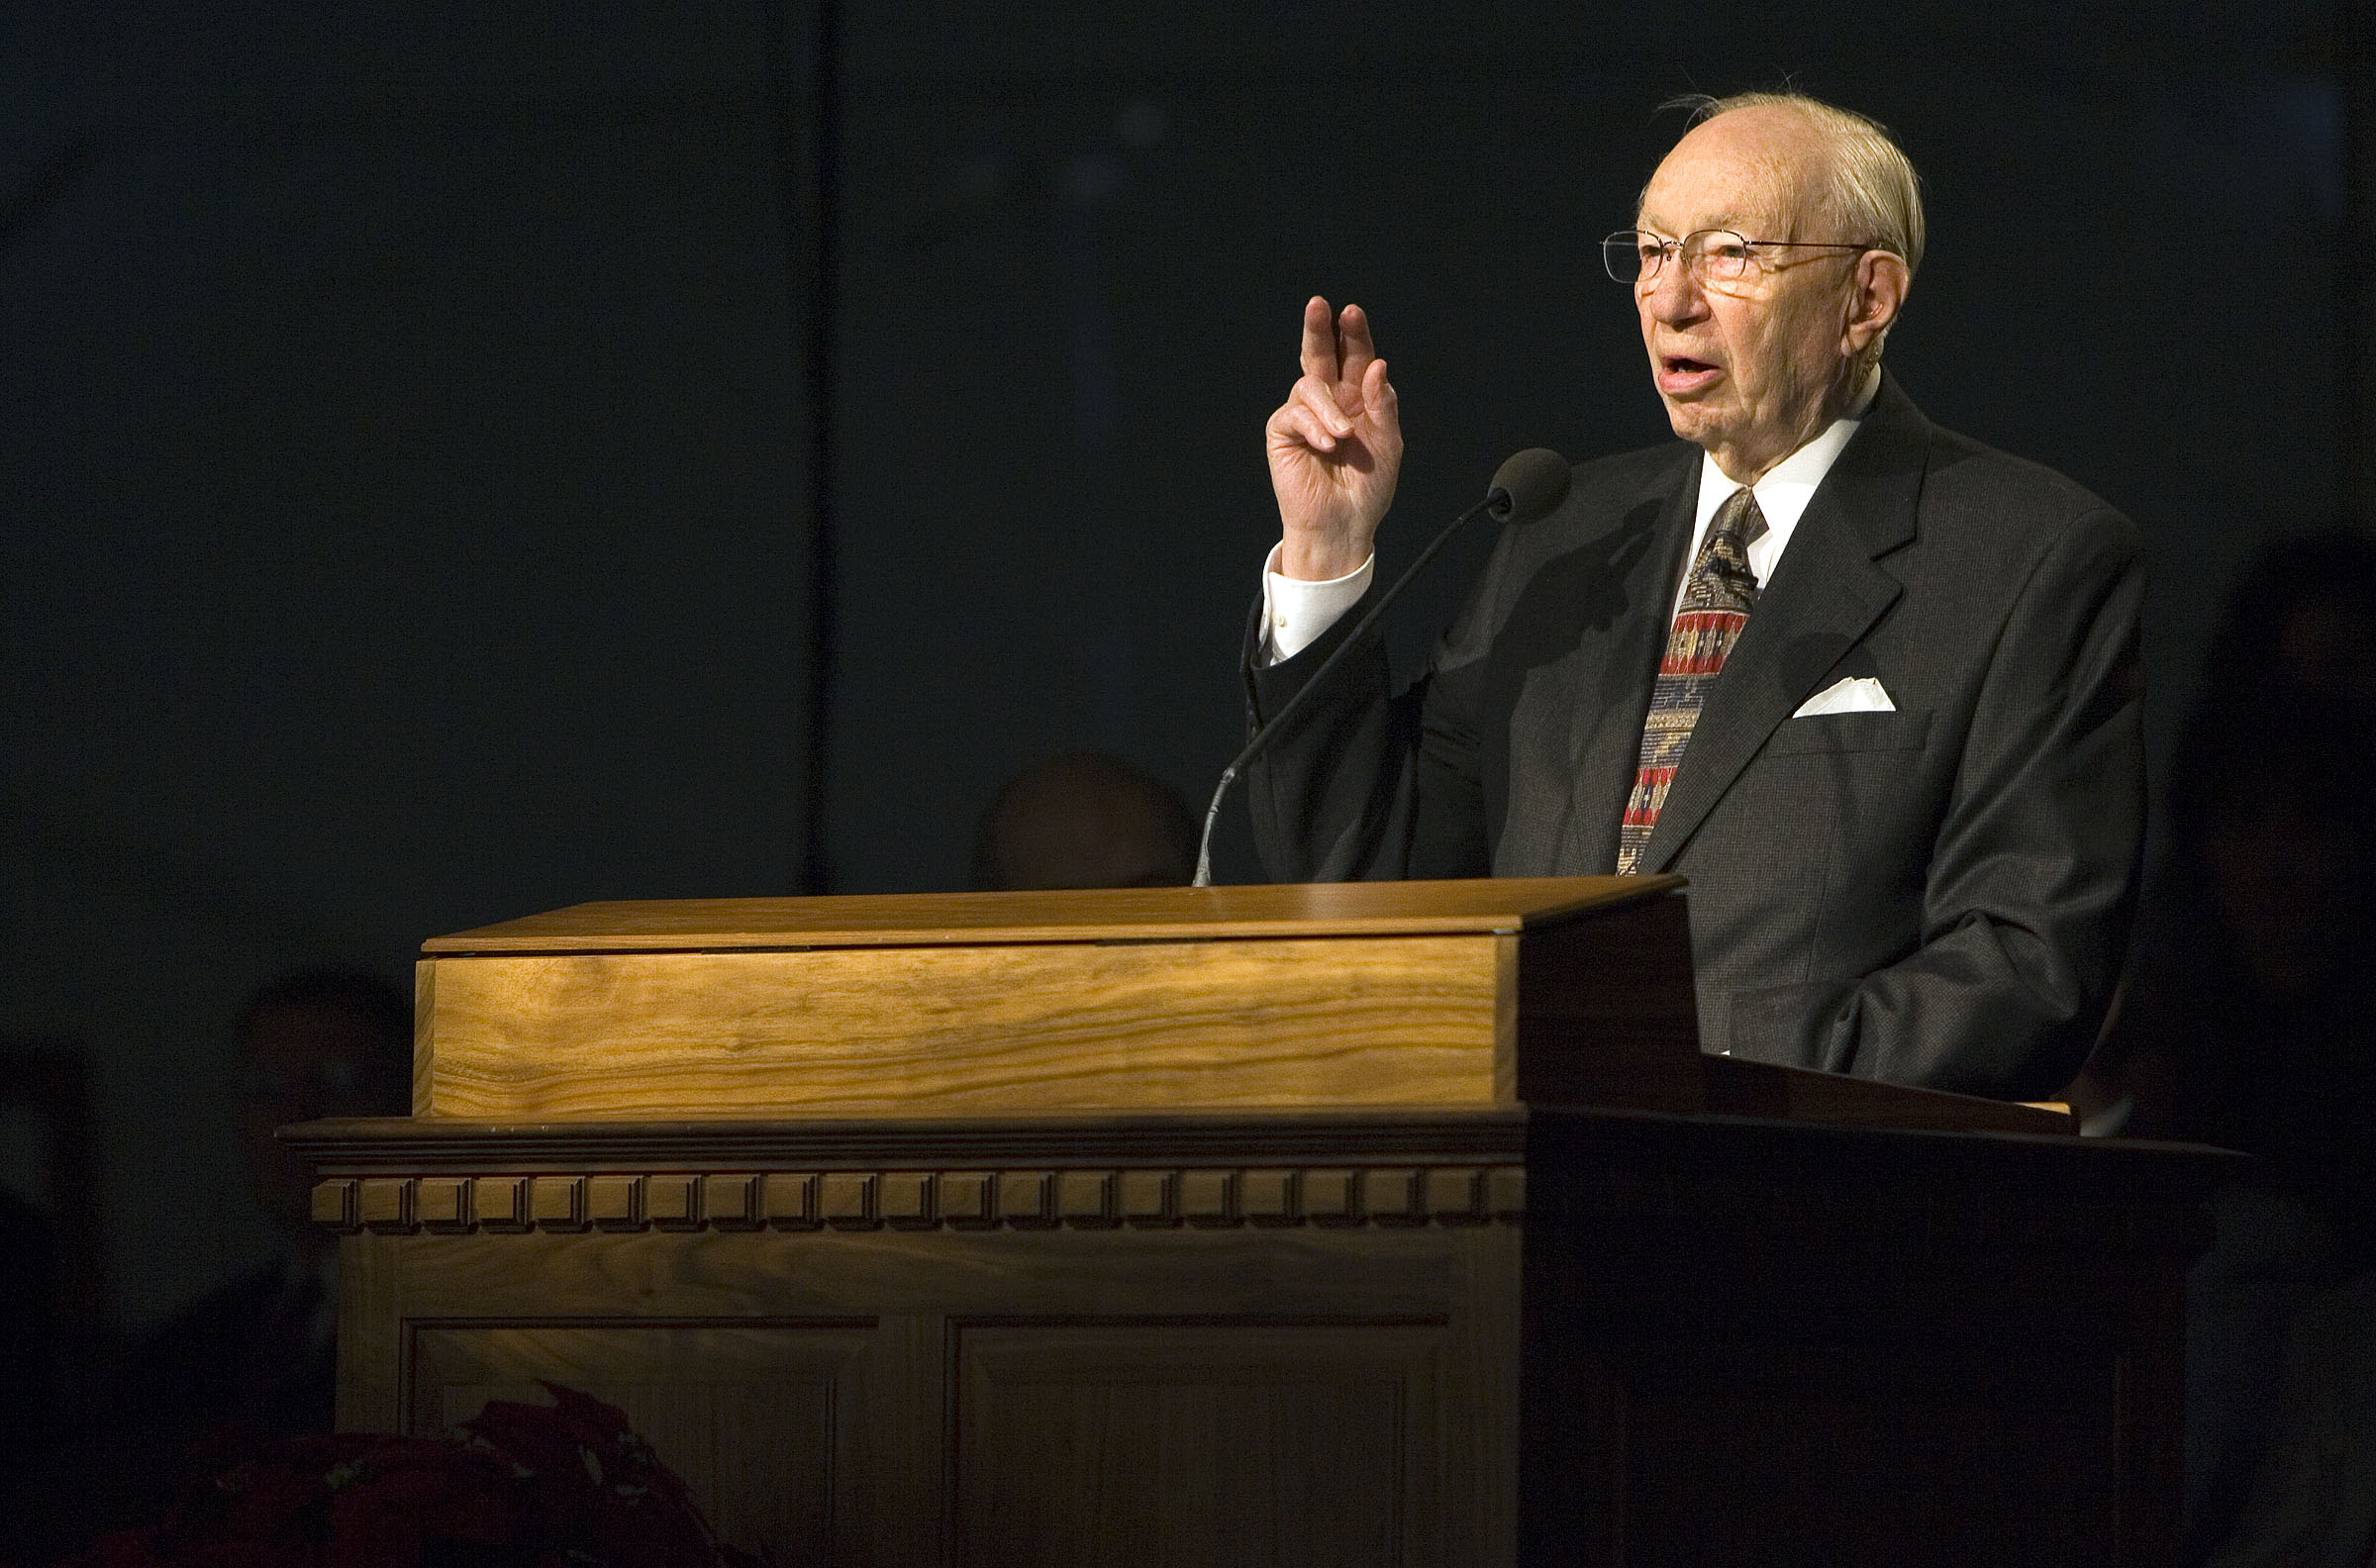 President Gordon B. Hinckley speaks to the congregation at the groundbreaking of the Oquirrh Mountain Utah Temple in South Jordan, Utah, Saturday Dec. 16, 2006.